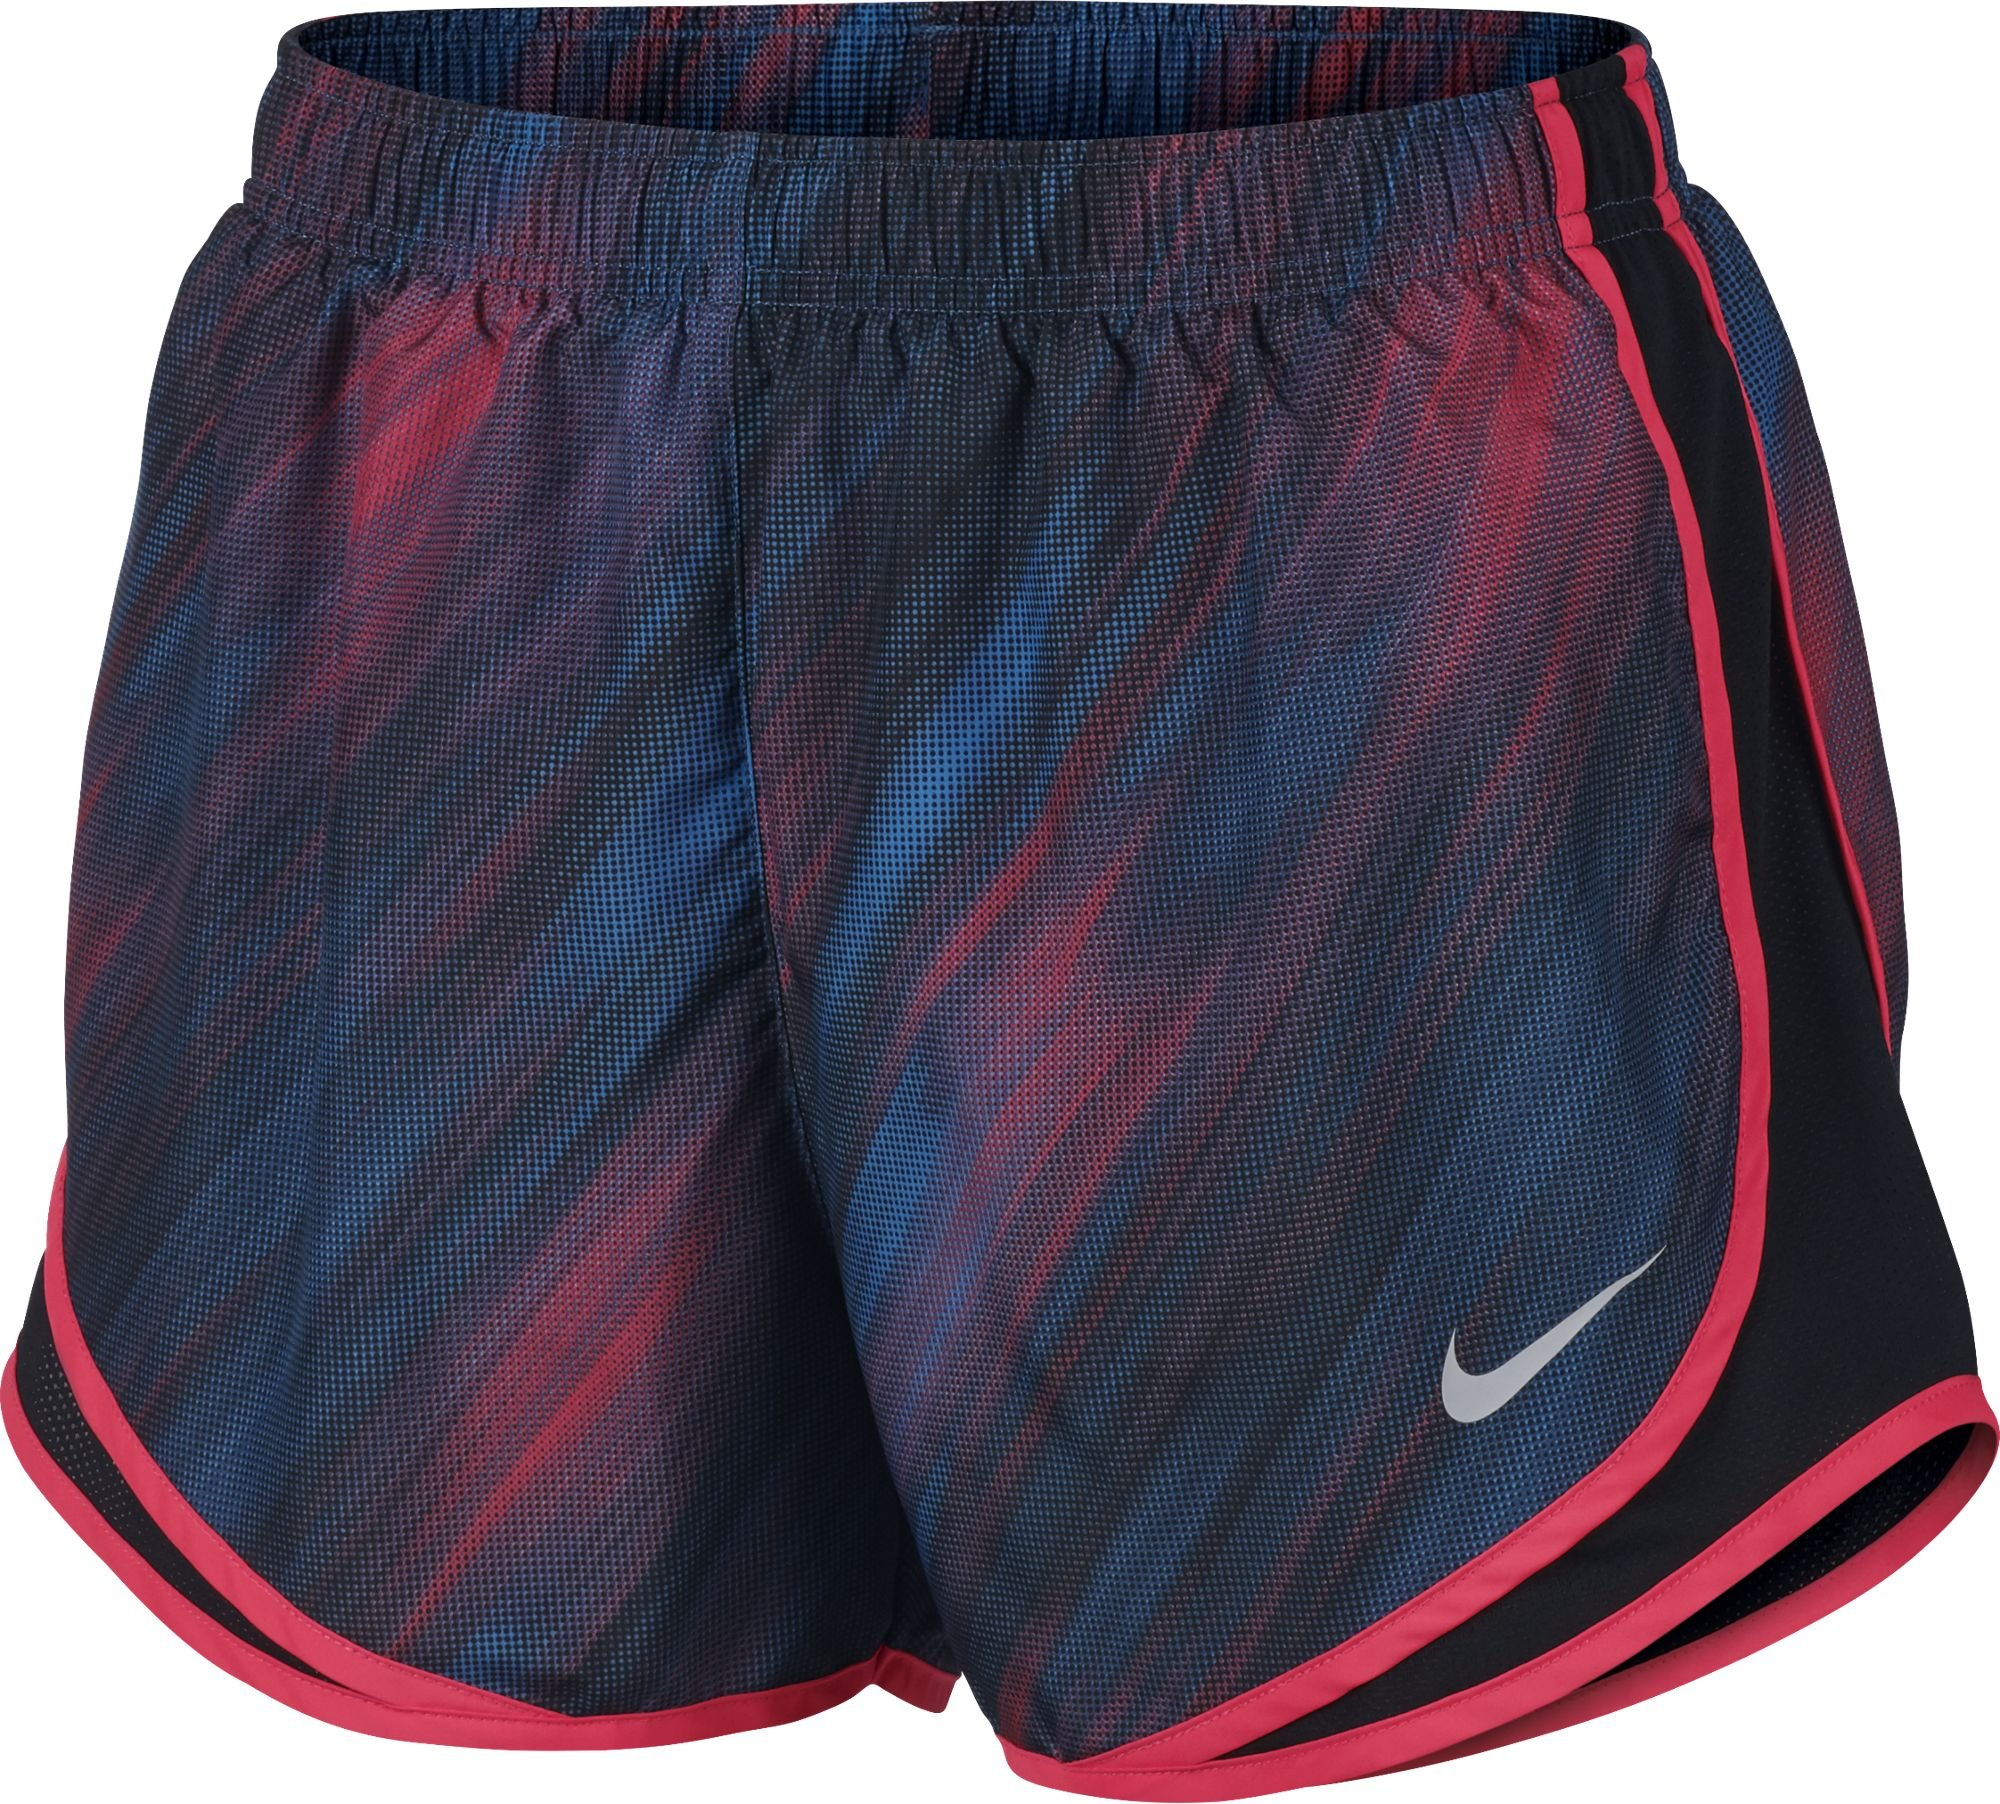 fantastic savings great prices skate shoes Nike Women's Dry Tempo Running Shorts Racer Pink/Black/LT Photo Blue/Wolf  Grey Size Medium